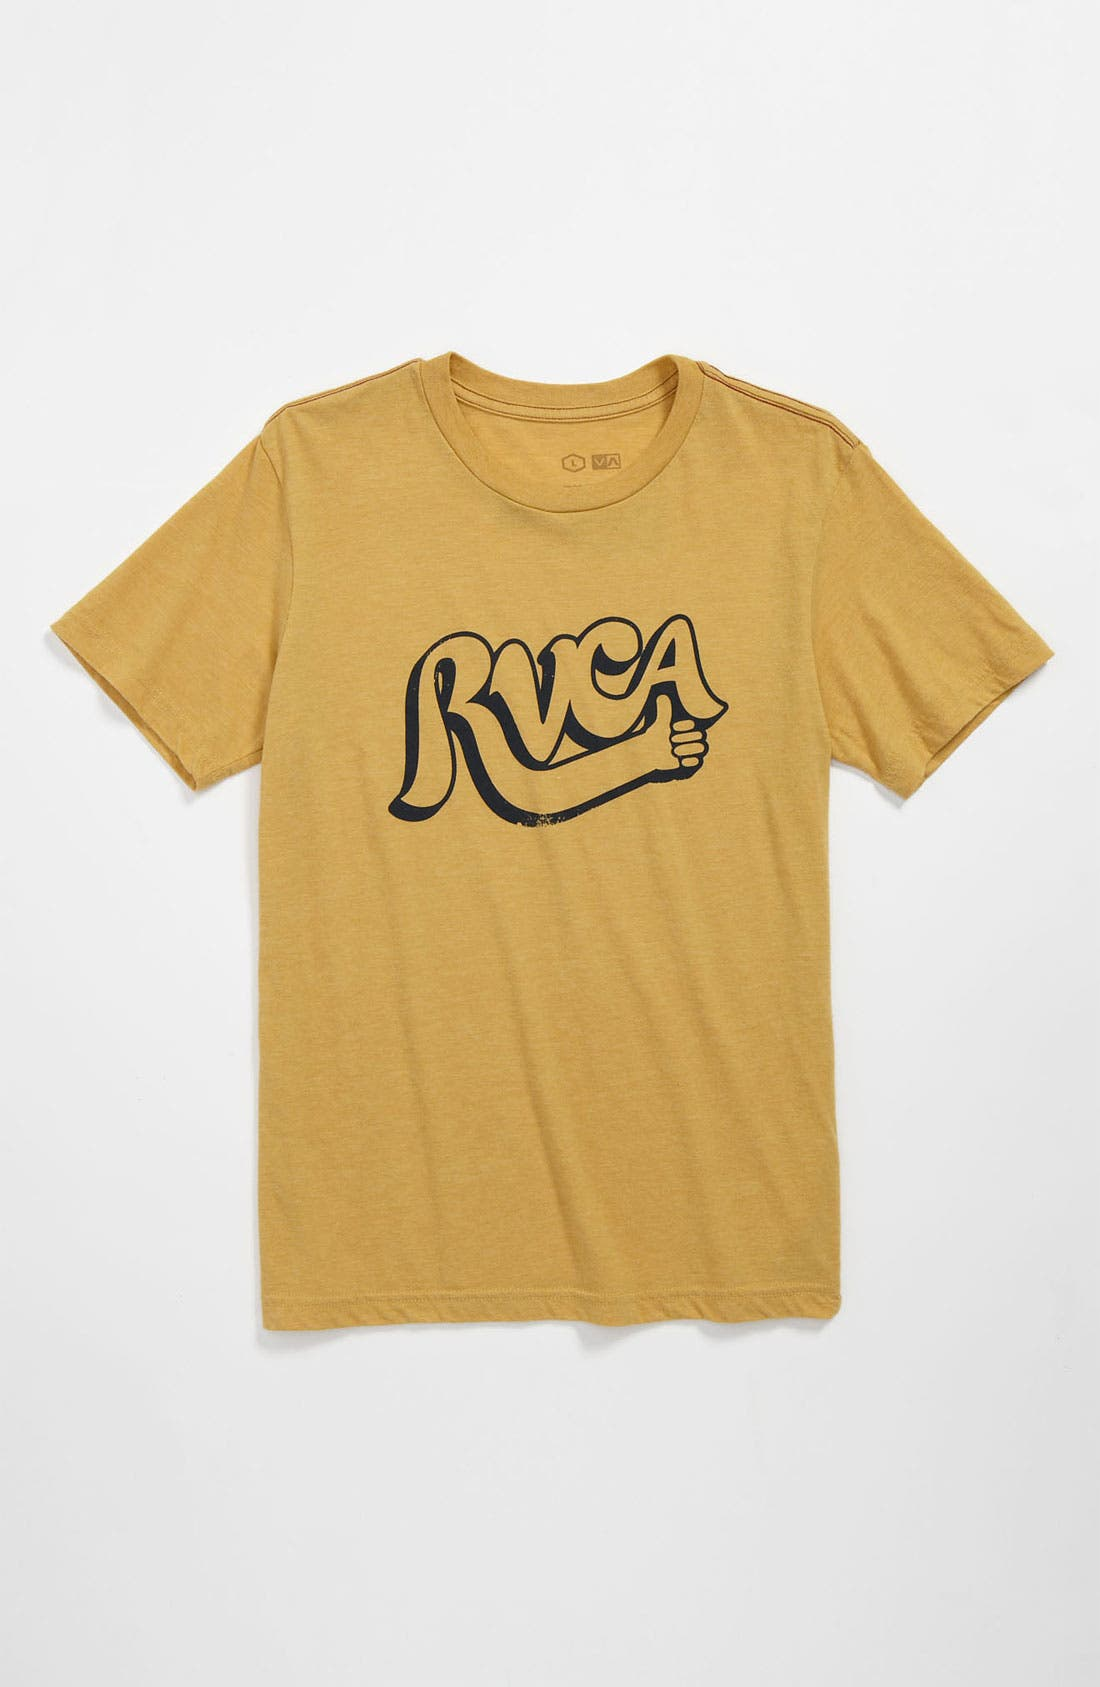 Main Image - RVCA 'Good Job' Graphic T-Shirt (Big Boys)